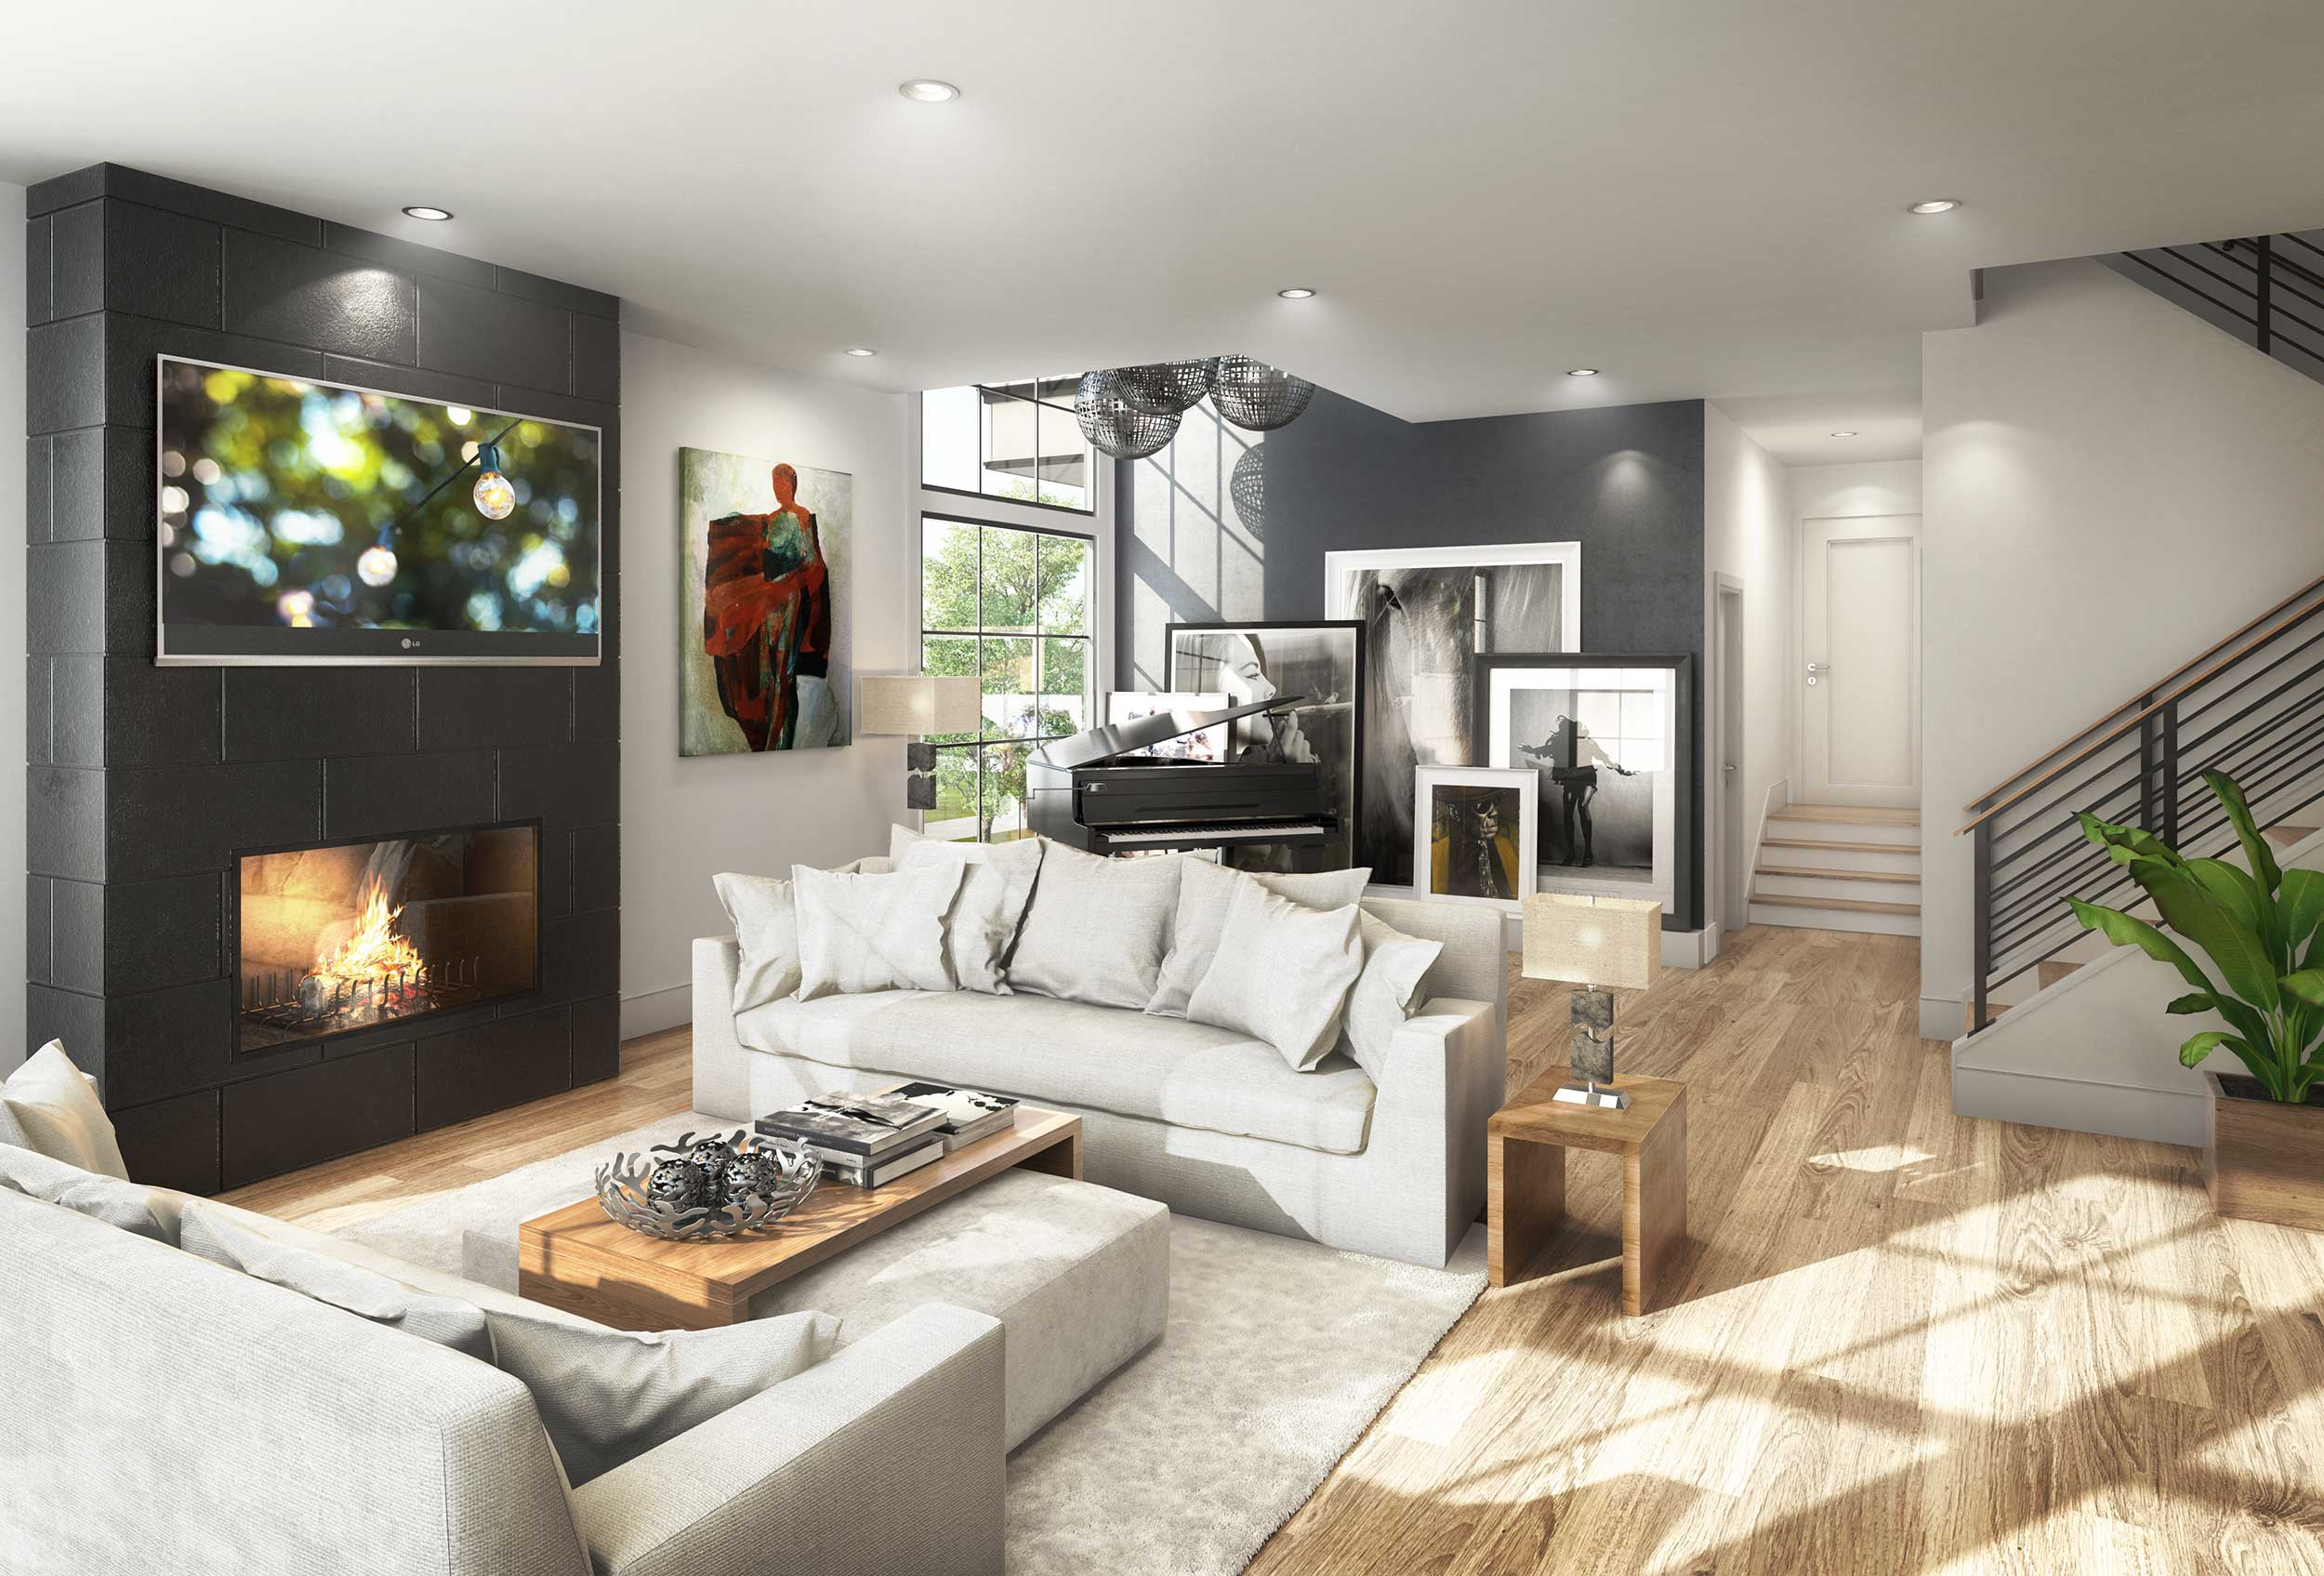 Additional photo for property listing at One Loudoun Upper West - Parkview Collection-1lx 20626 Easthampton Plaza Ashburn, Virginia 20147 United States